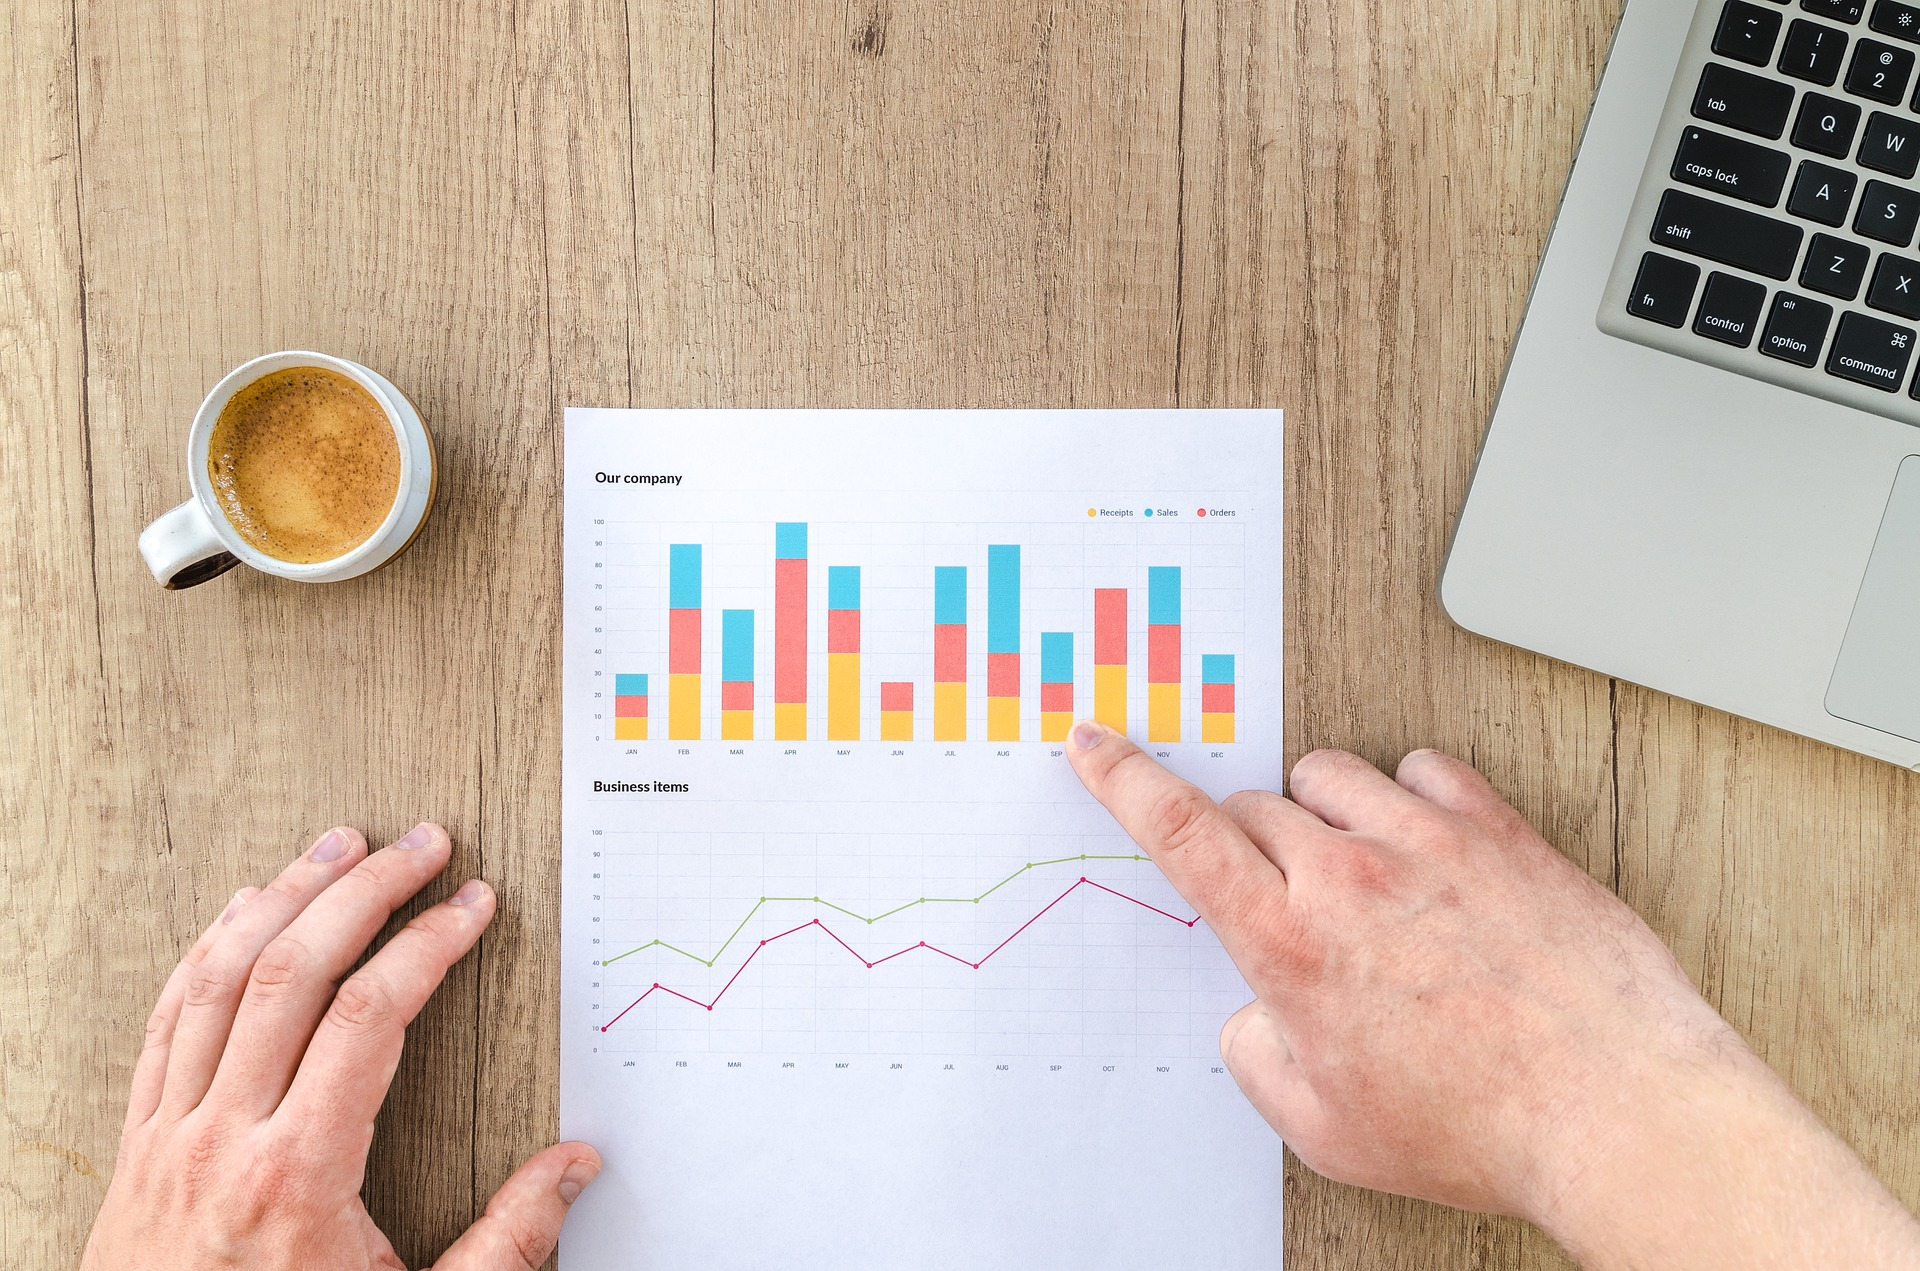 New Products and Marketing Campaigns – Get Visibility to Maximize ROI